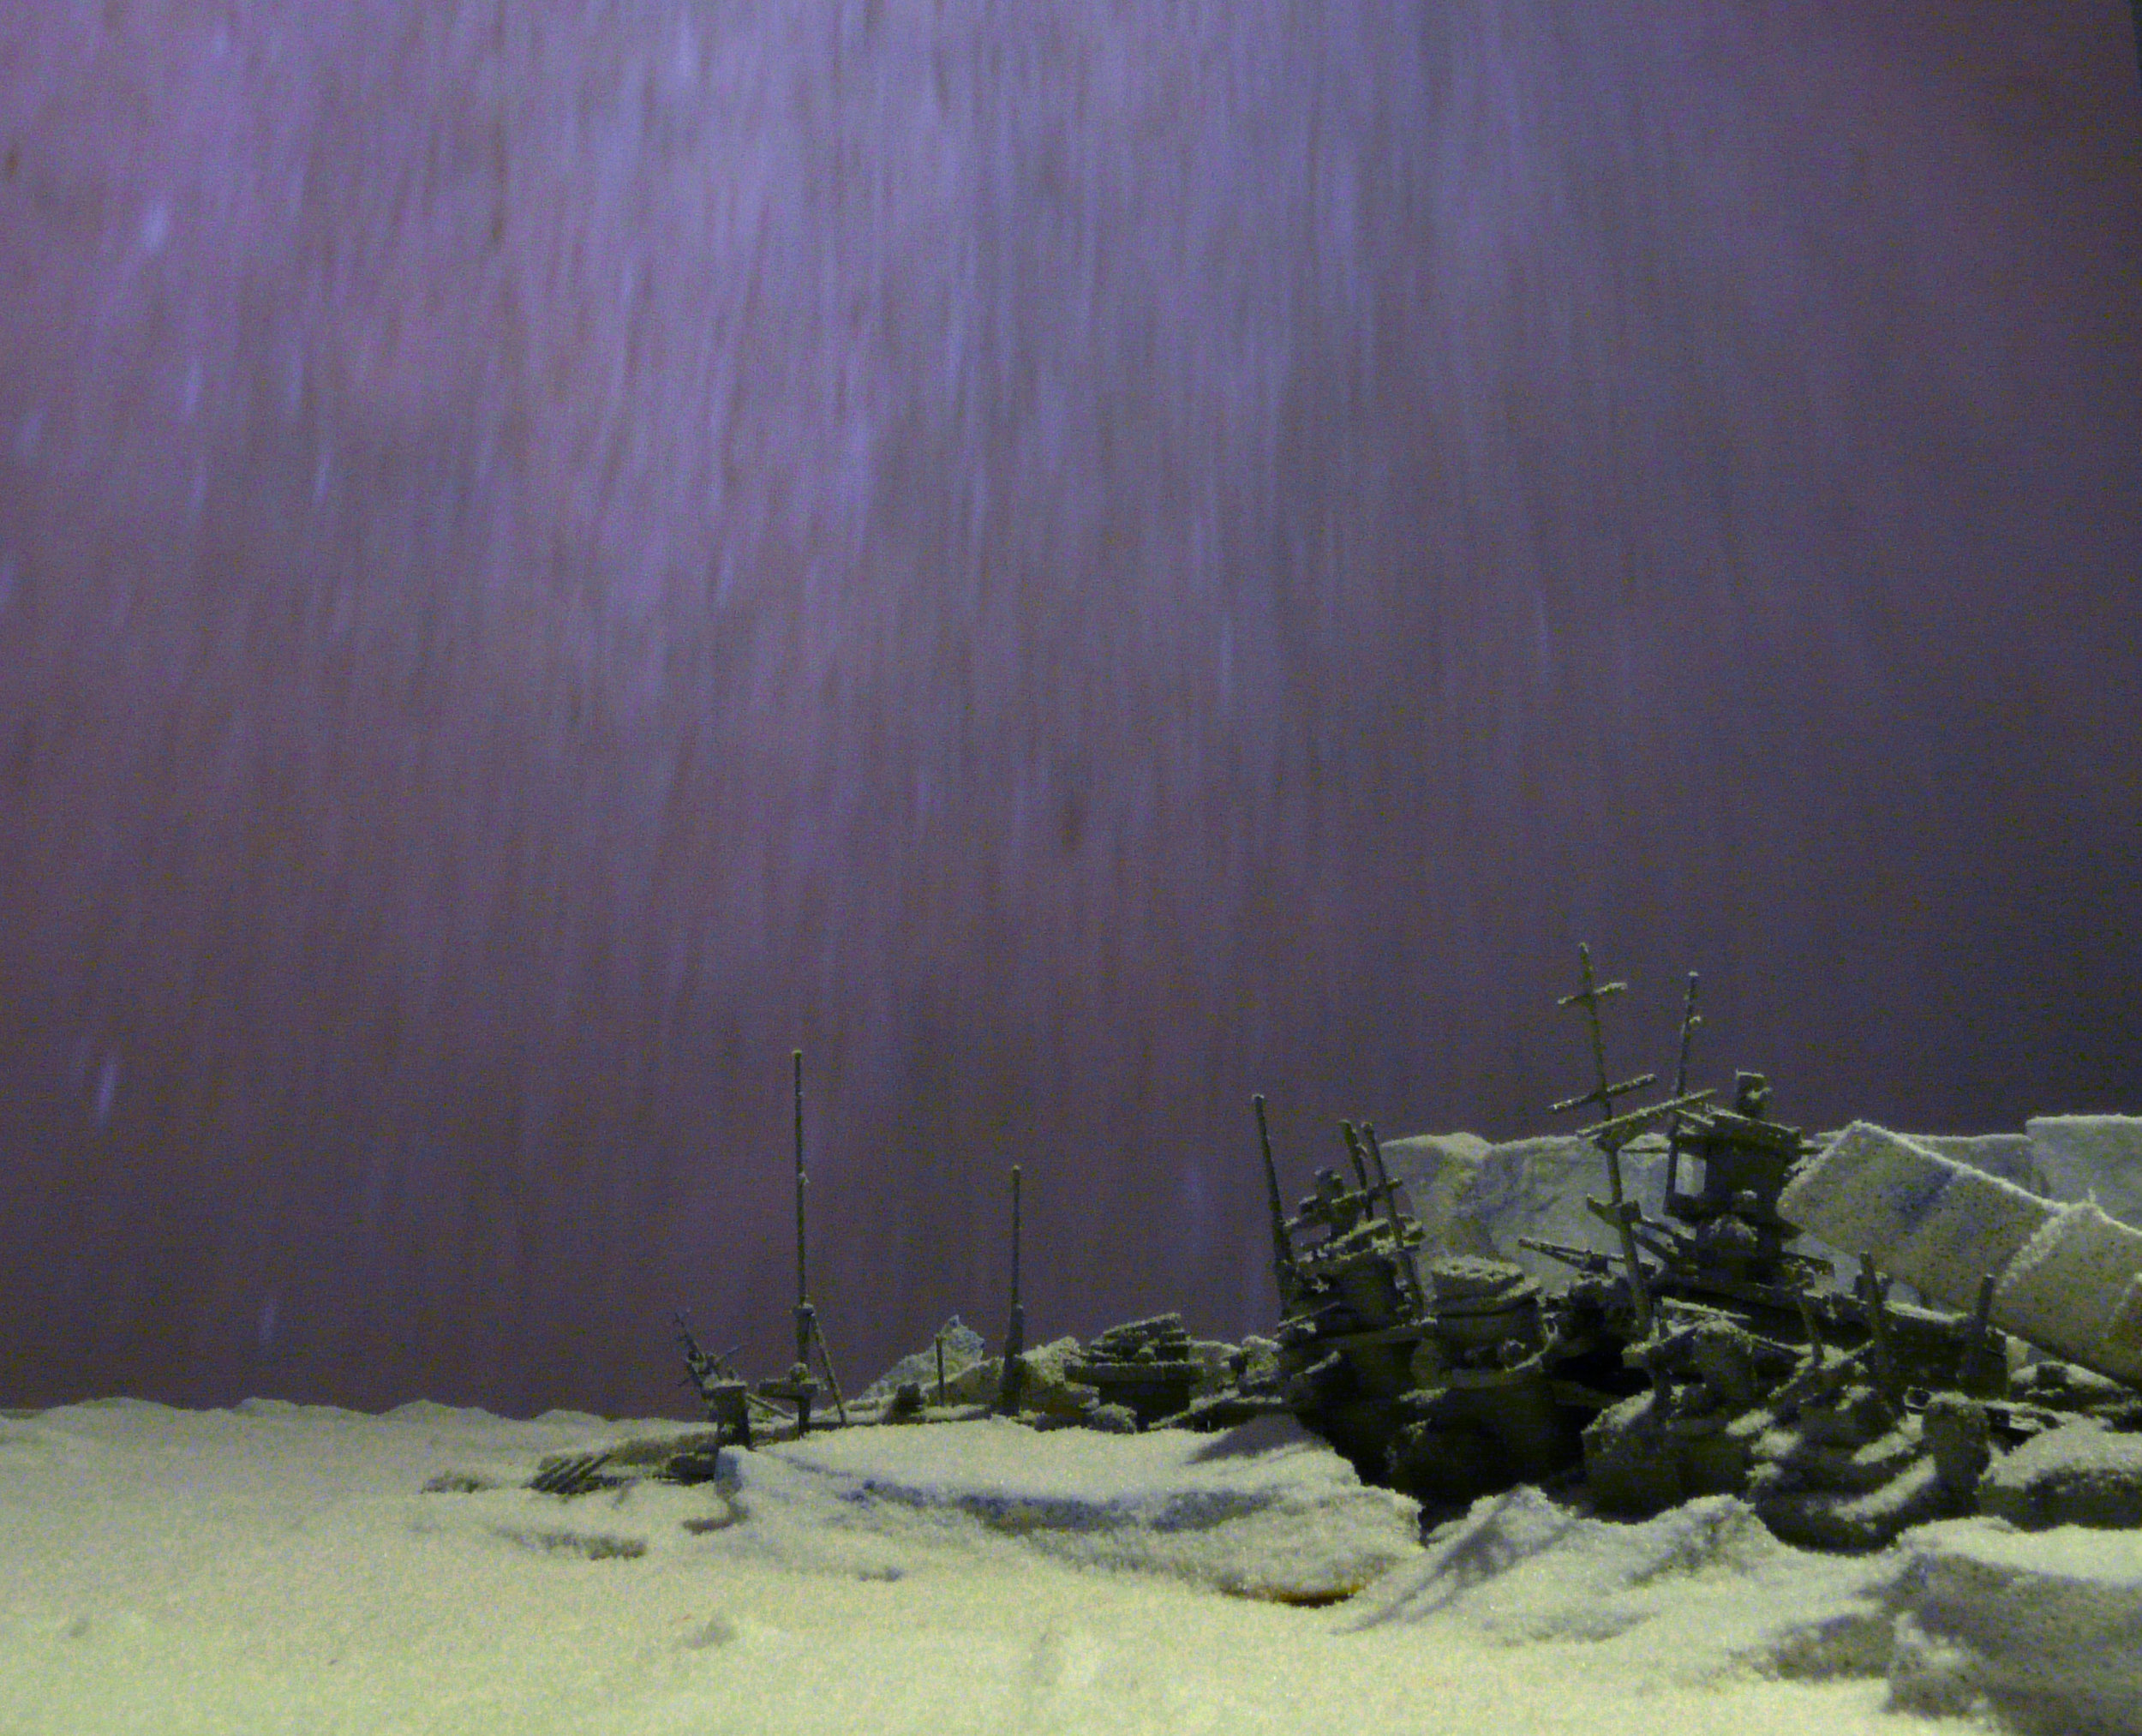 Ice Station 001 (the wreck of hope)